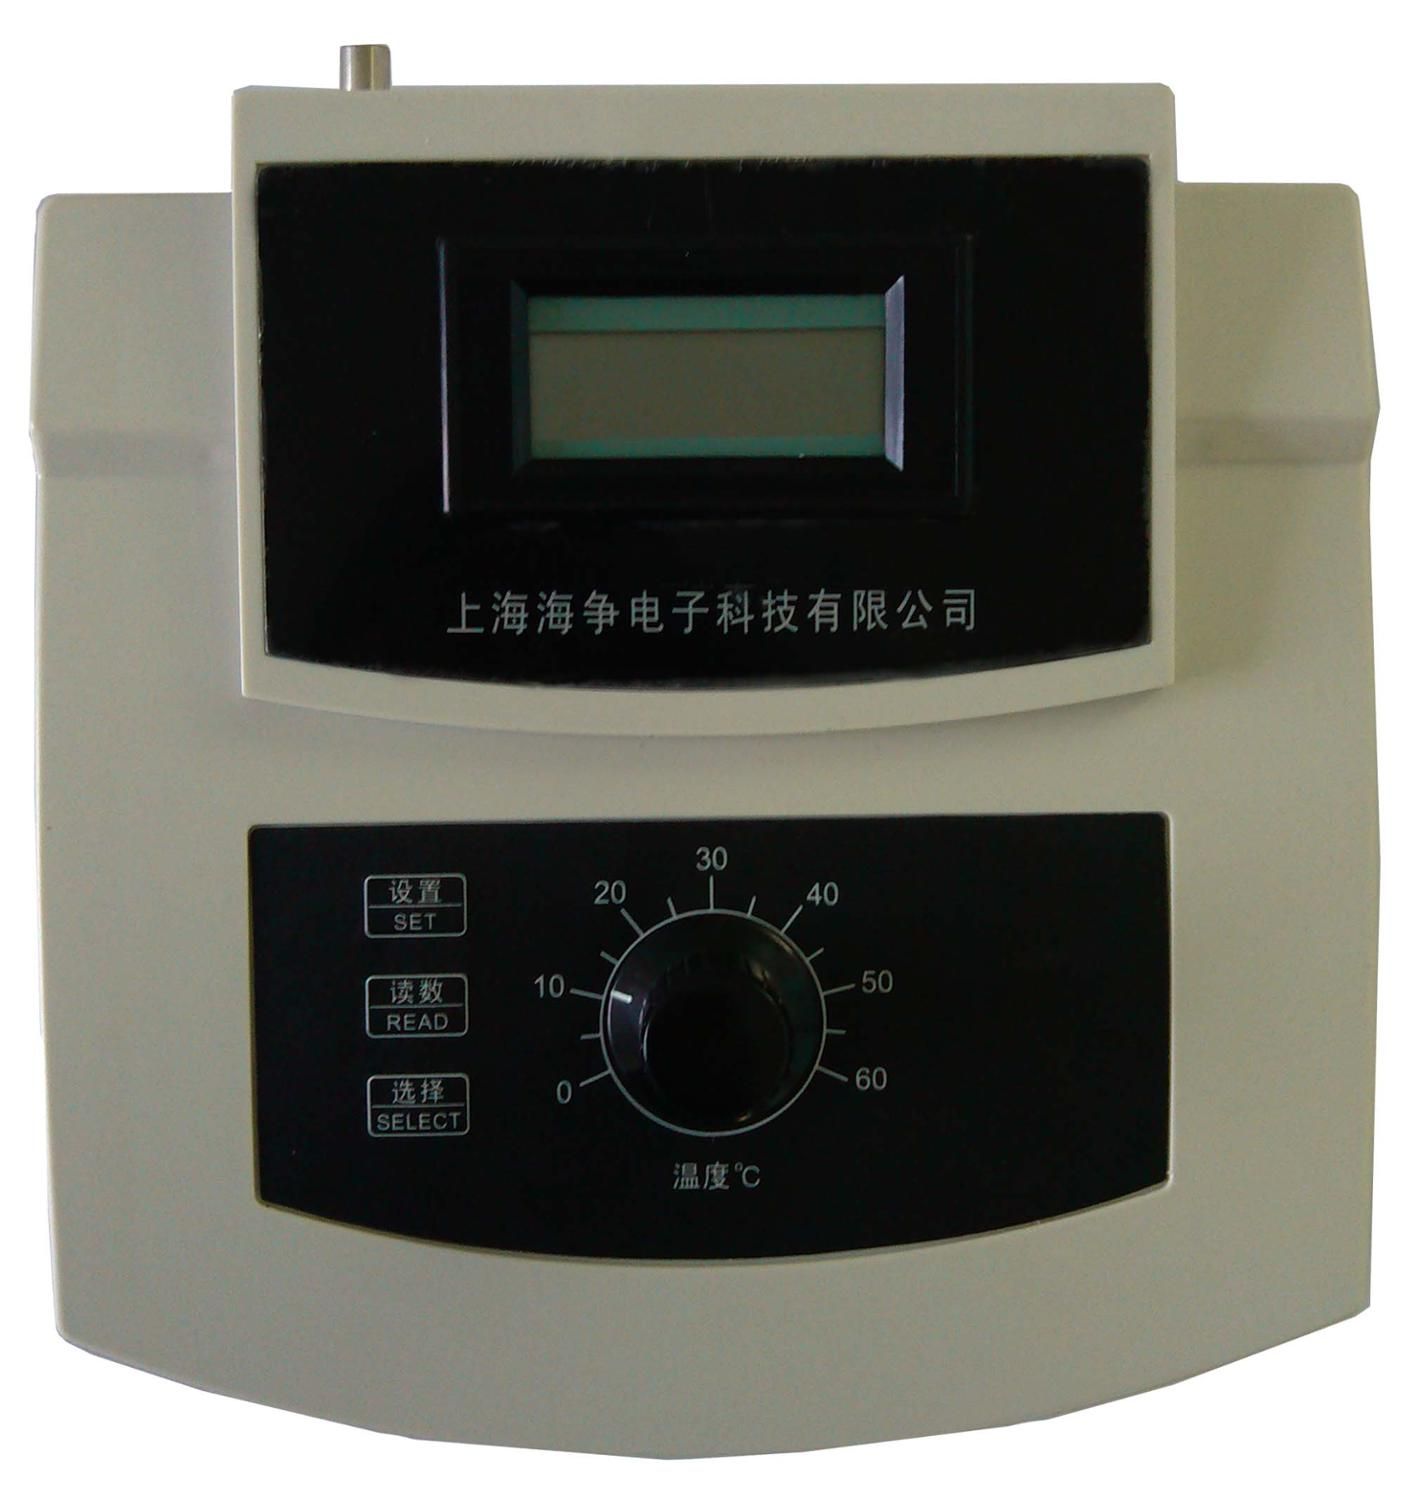 (Shanghai Hai Heng) DJ-1 type three parameter detector (calcium ion, magnesium ion, total hardness of water) image